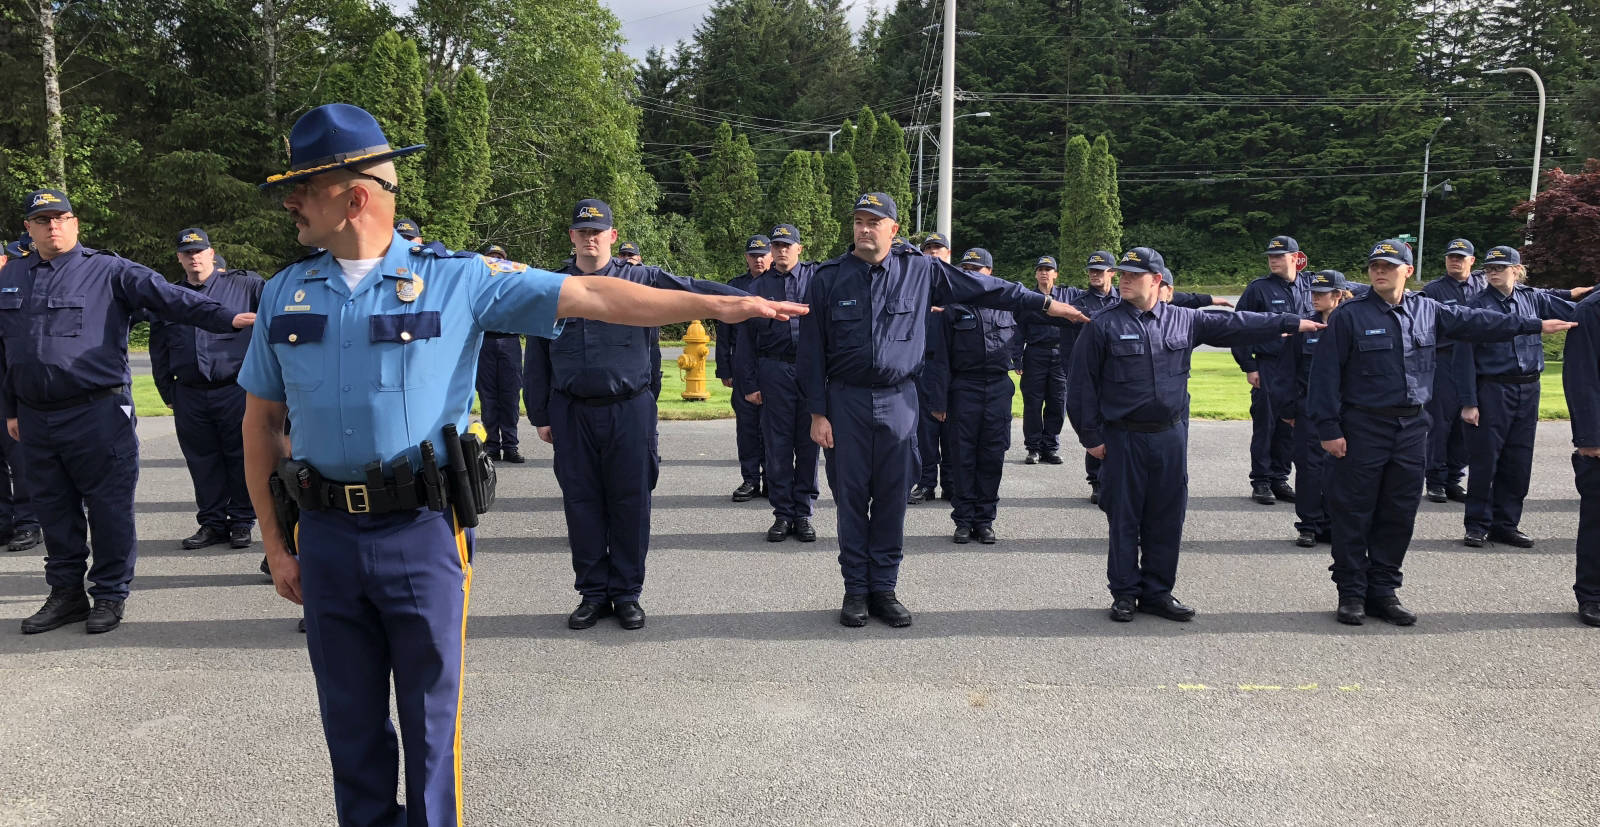 Sgt. Eric Spitzer, deputy commander of the Alaska Law Enforcement Training Academy, leads recruits in training exercises on July 30, 2018, the first day of training at the Public Safety Training Academy in Sitka, Alaska. (Alaska State Troopers photo)